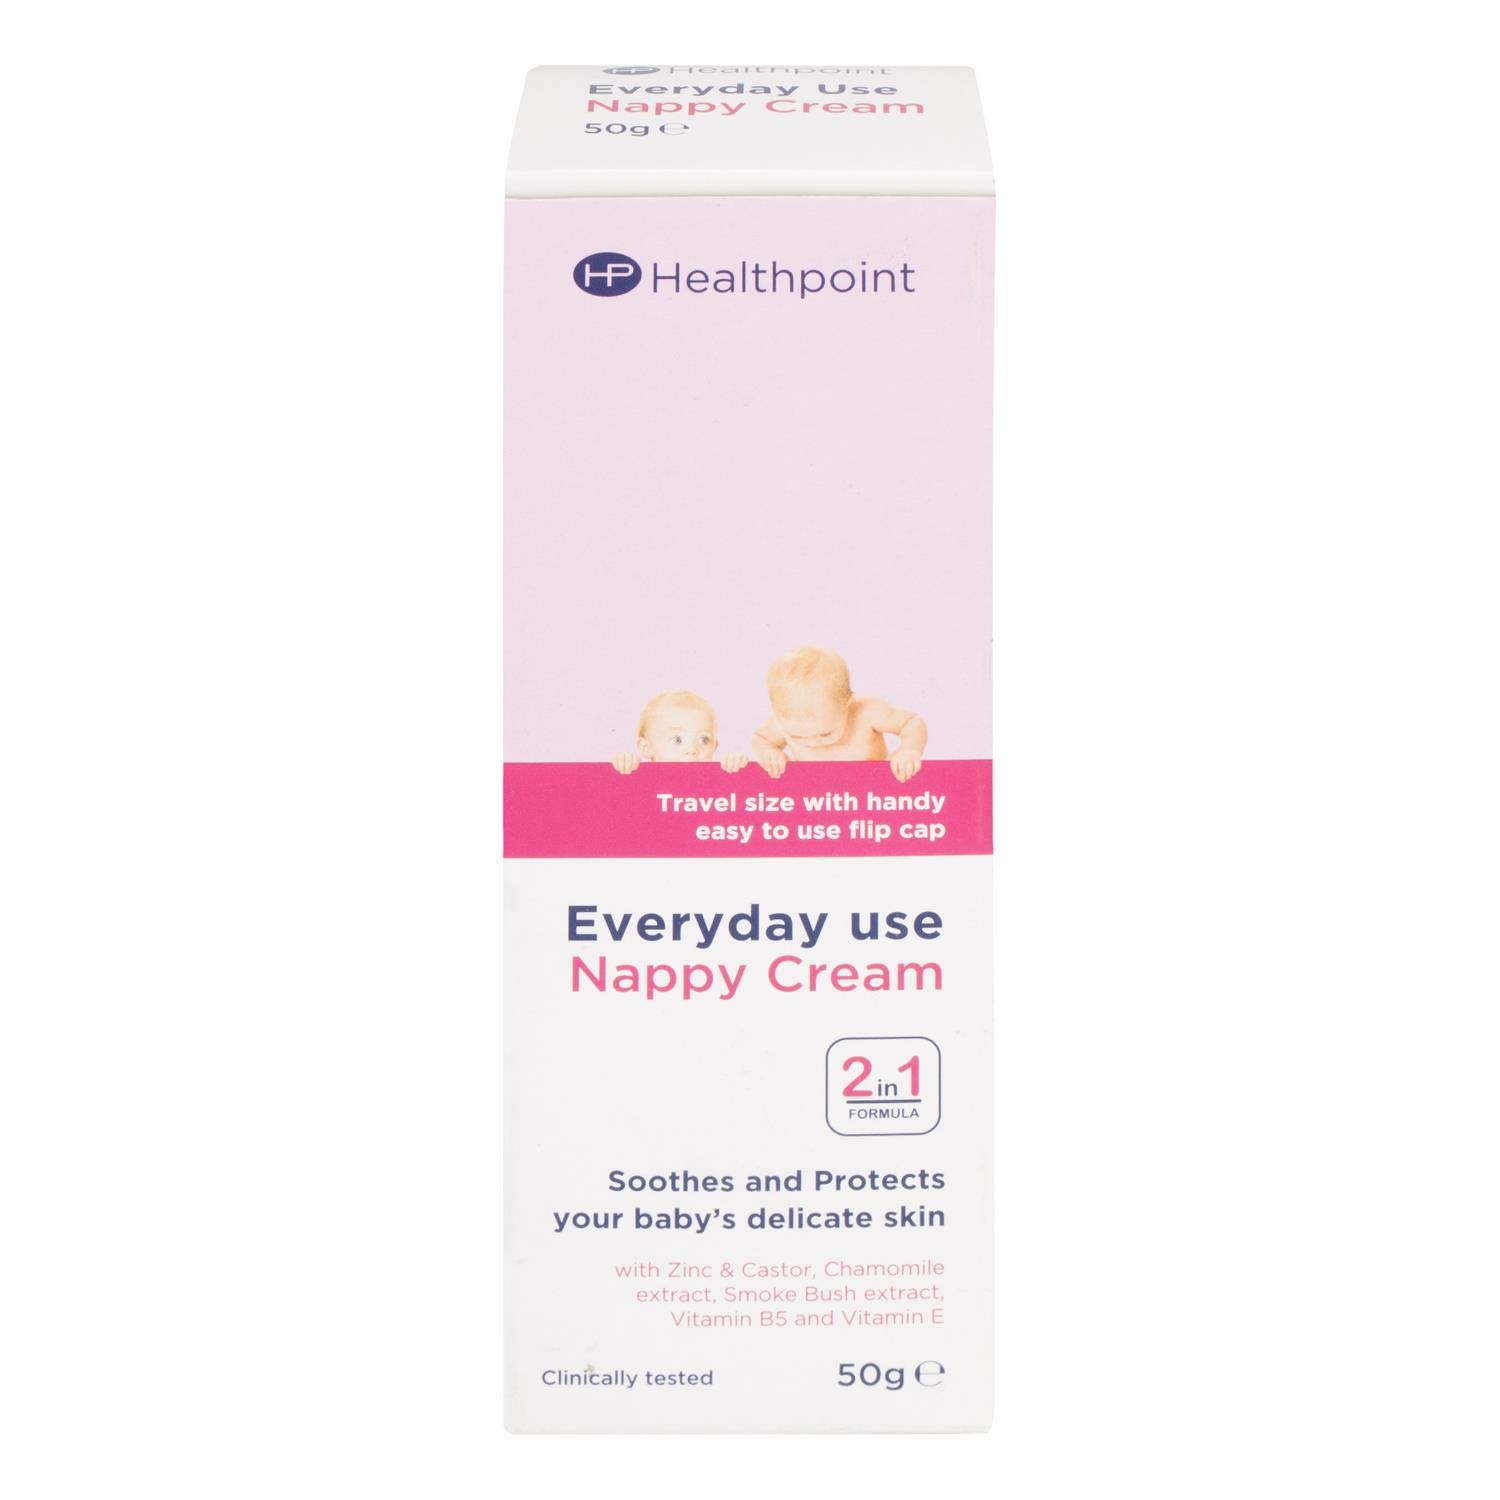 Healthpoint Everyday Use Nappy Cream 2-in-1 Formula Soothes and Protects Baby's Skin 50g, Pack of 12